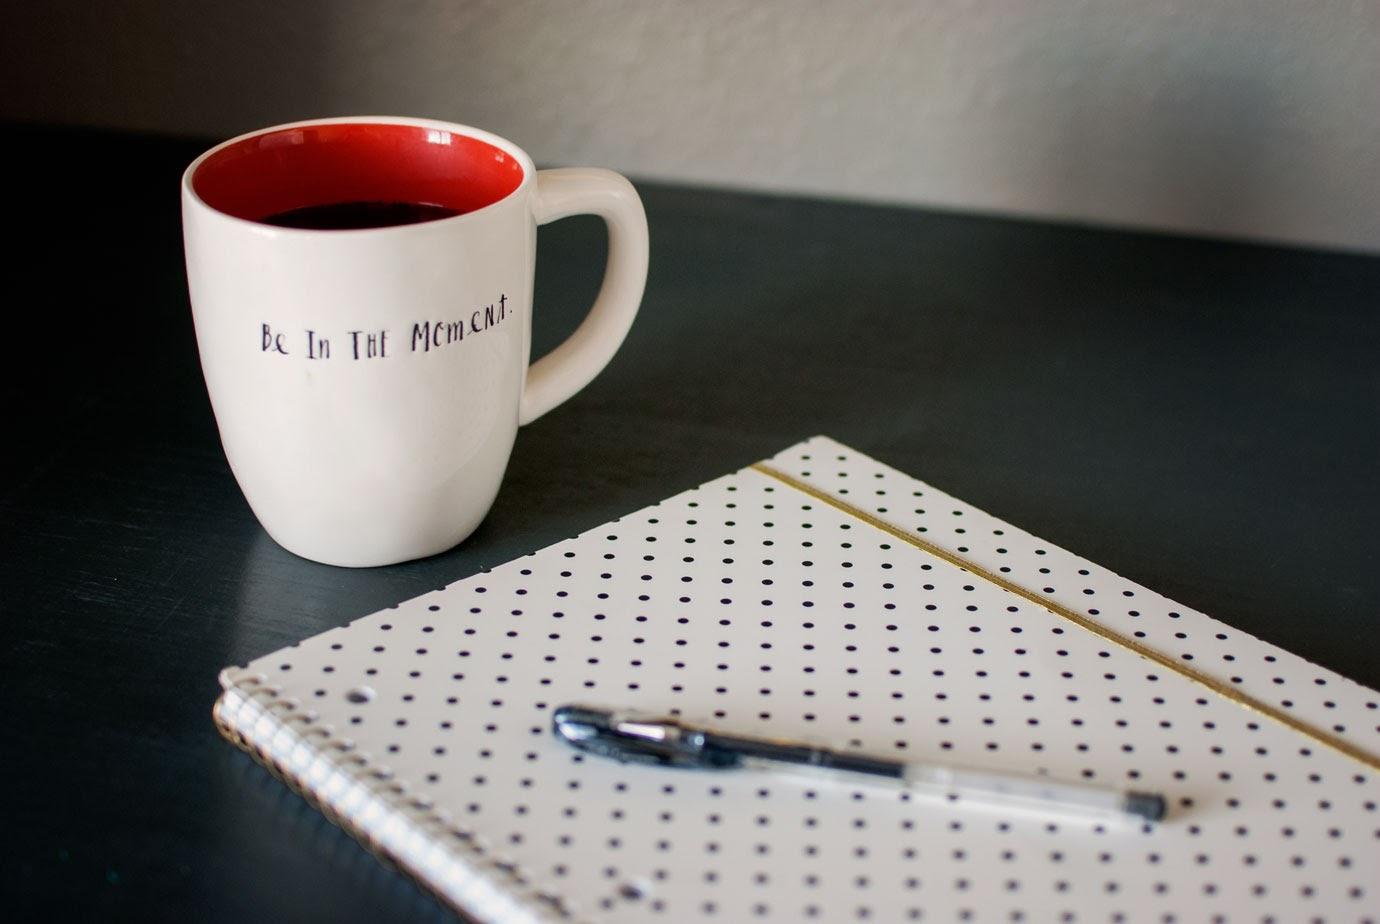 white coffee mug with coffee next to a polka dot notebook with a pen